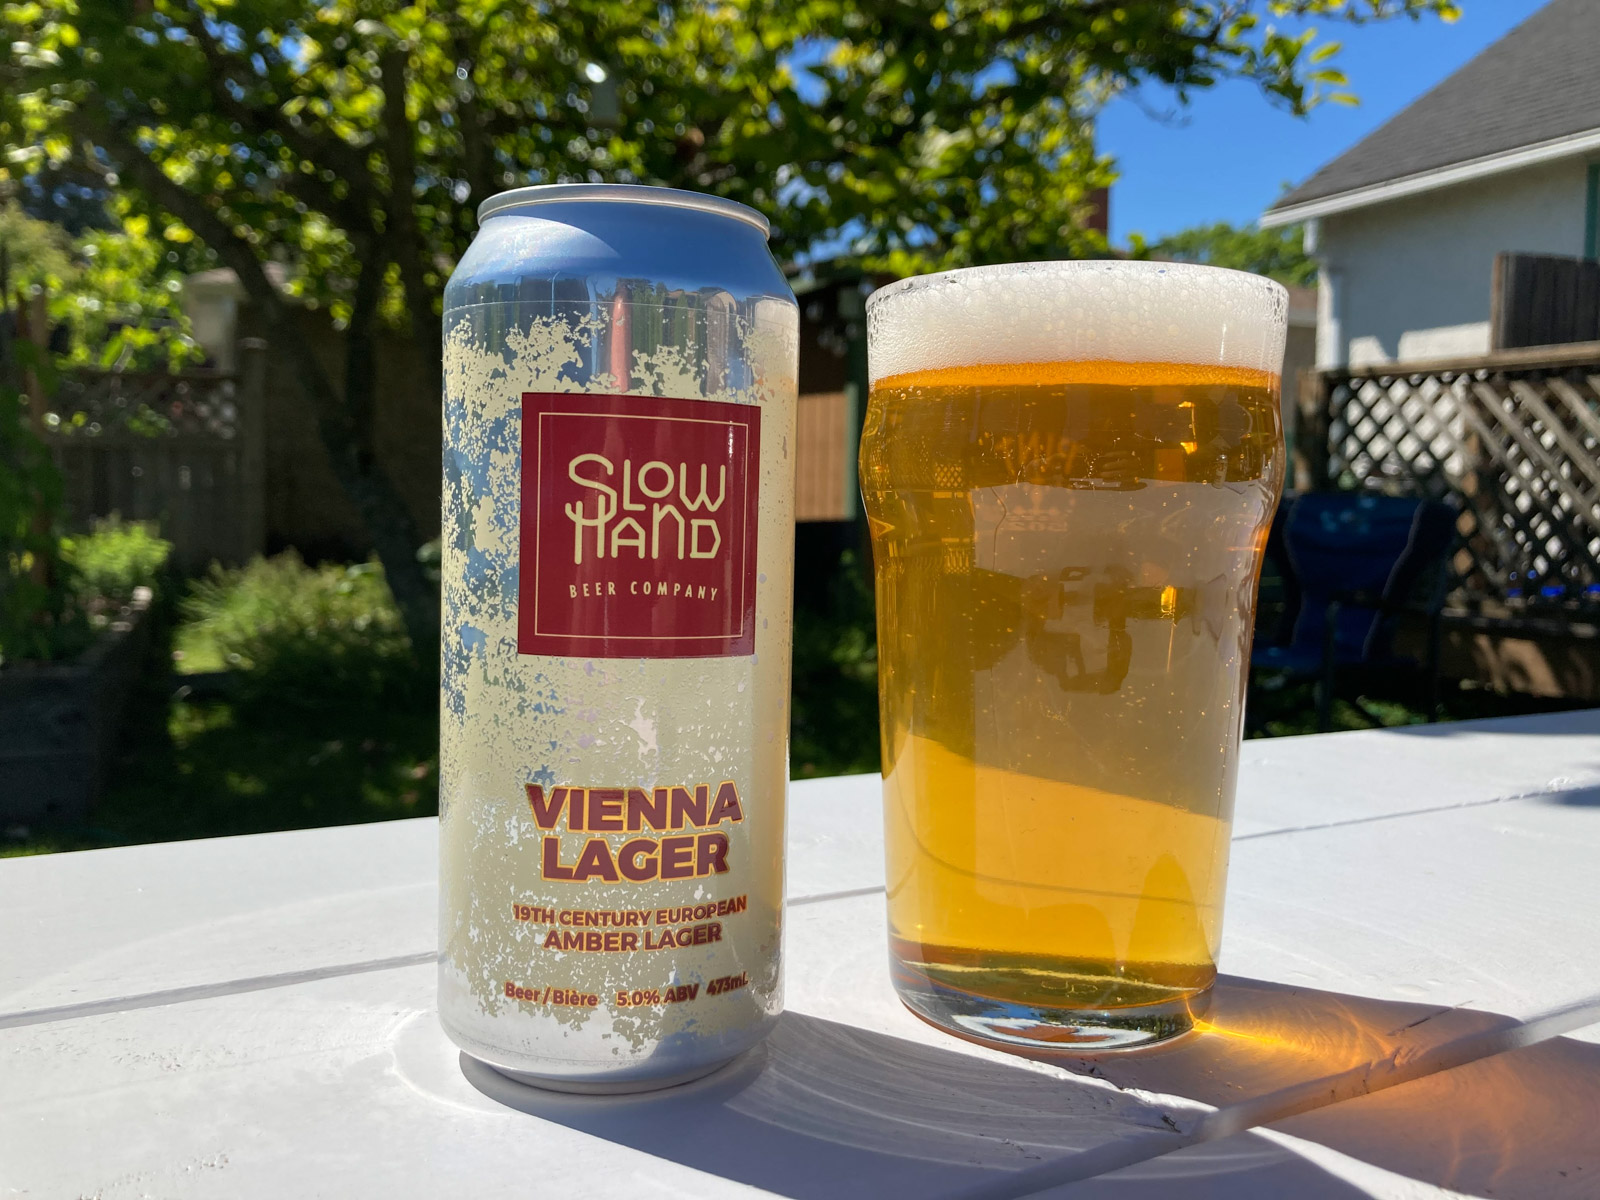 Vienne Lager Slow Hand